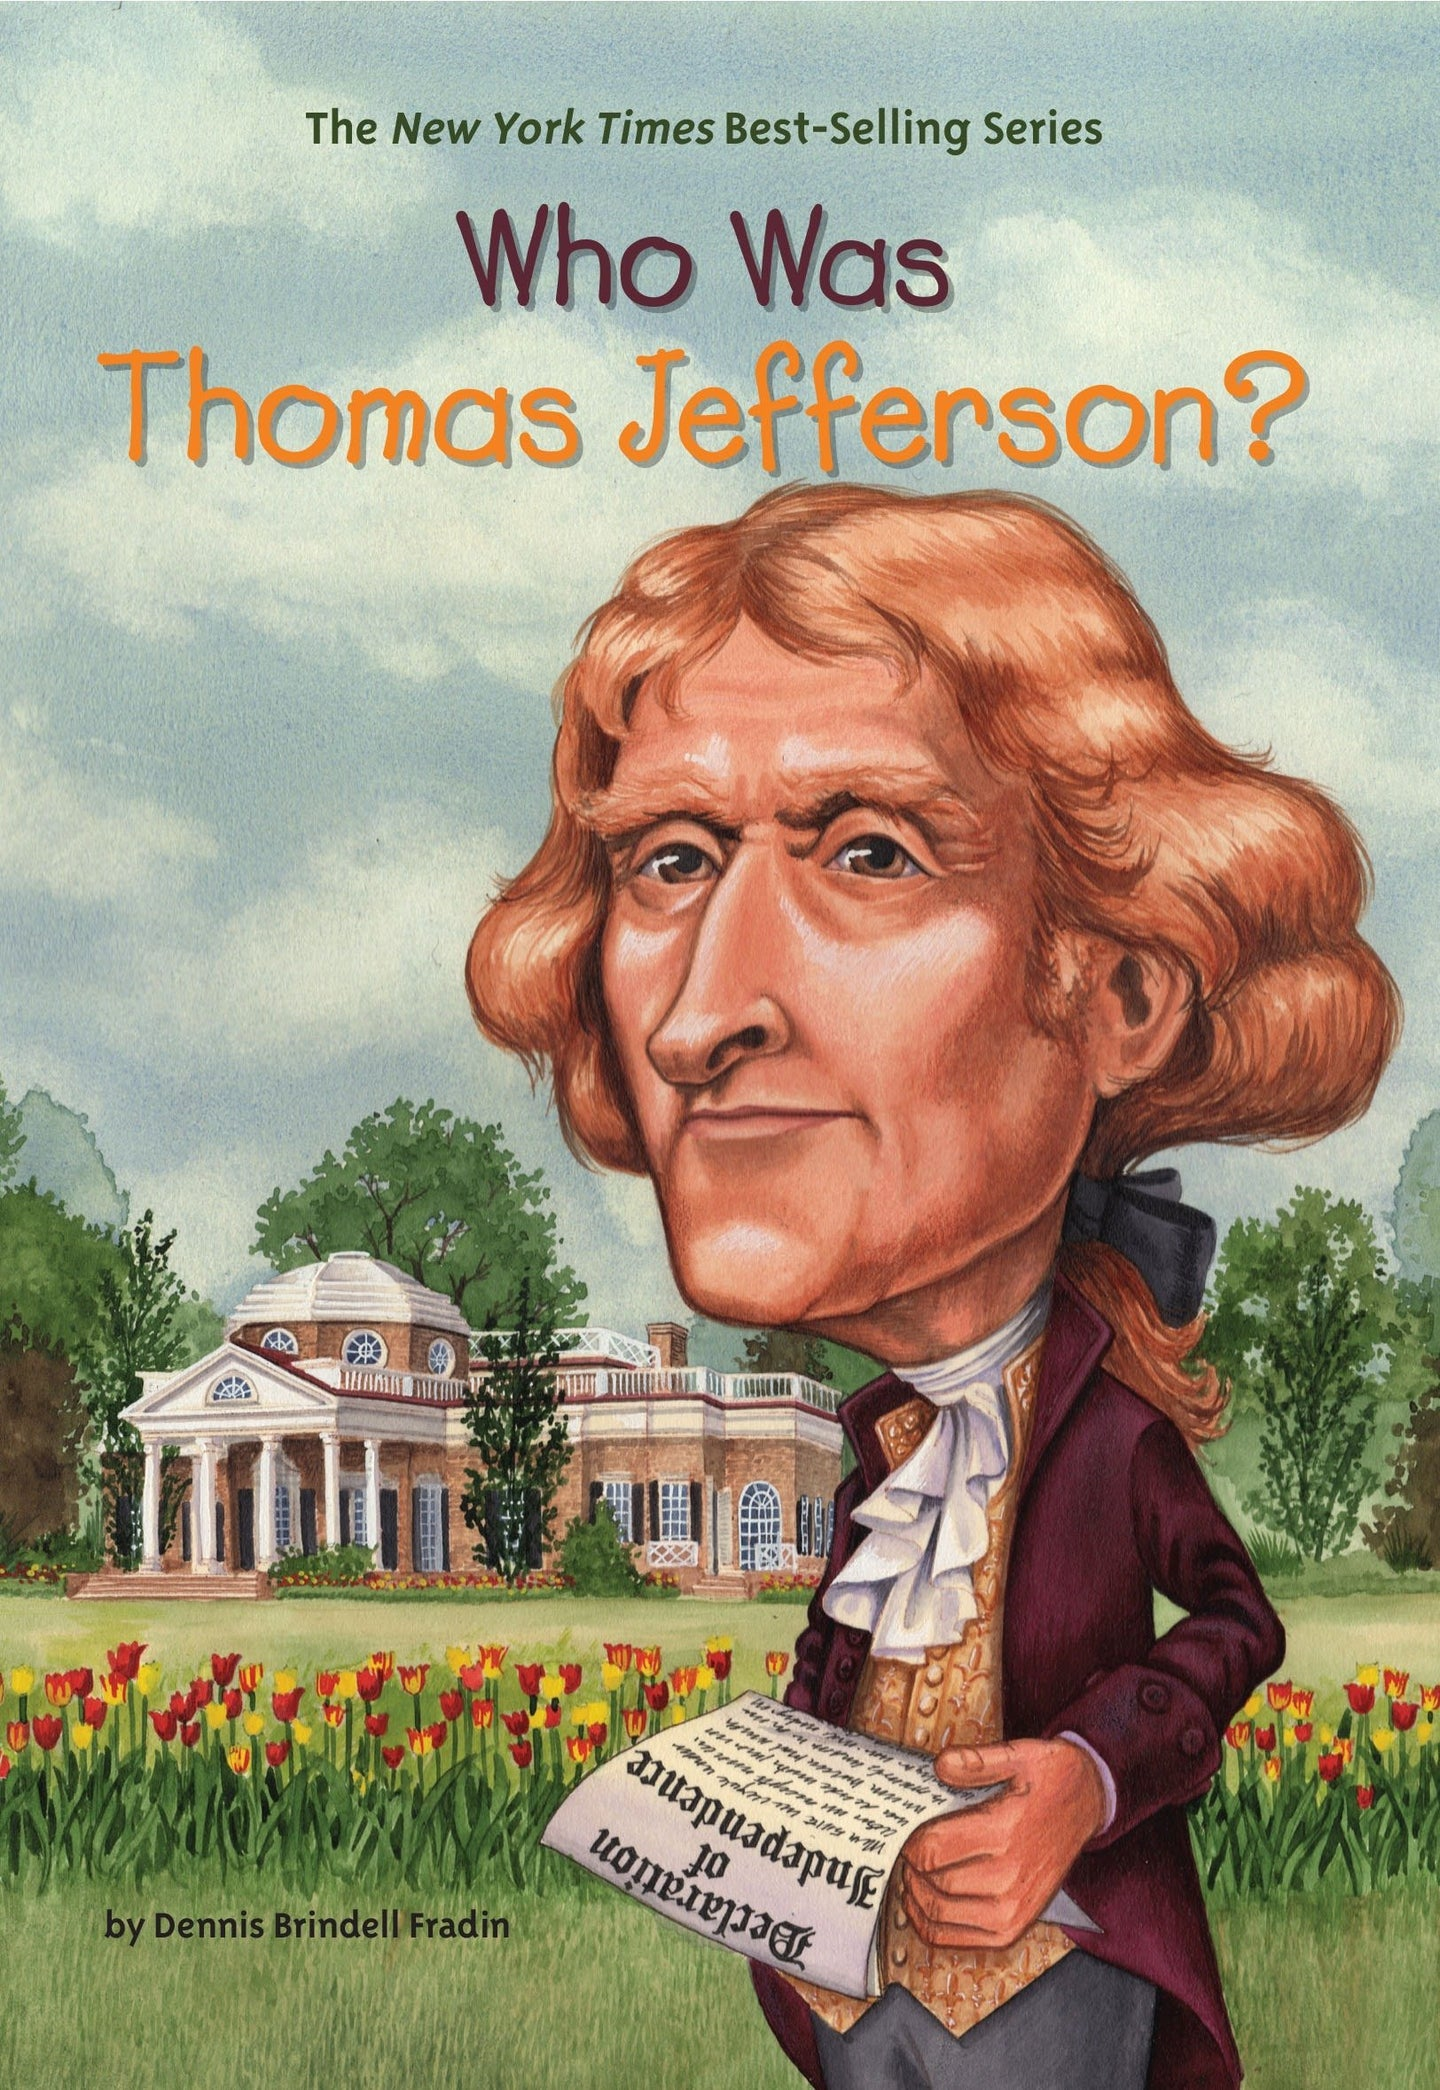 Who Was Thomas Jefferson? by Dennis Brindell Fradin - Little Green Schoolhouse Books